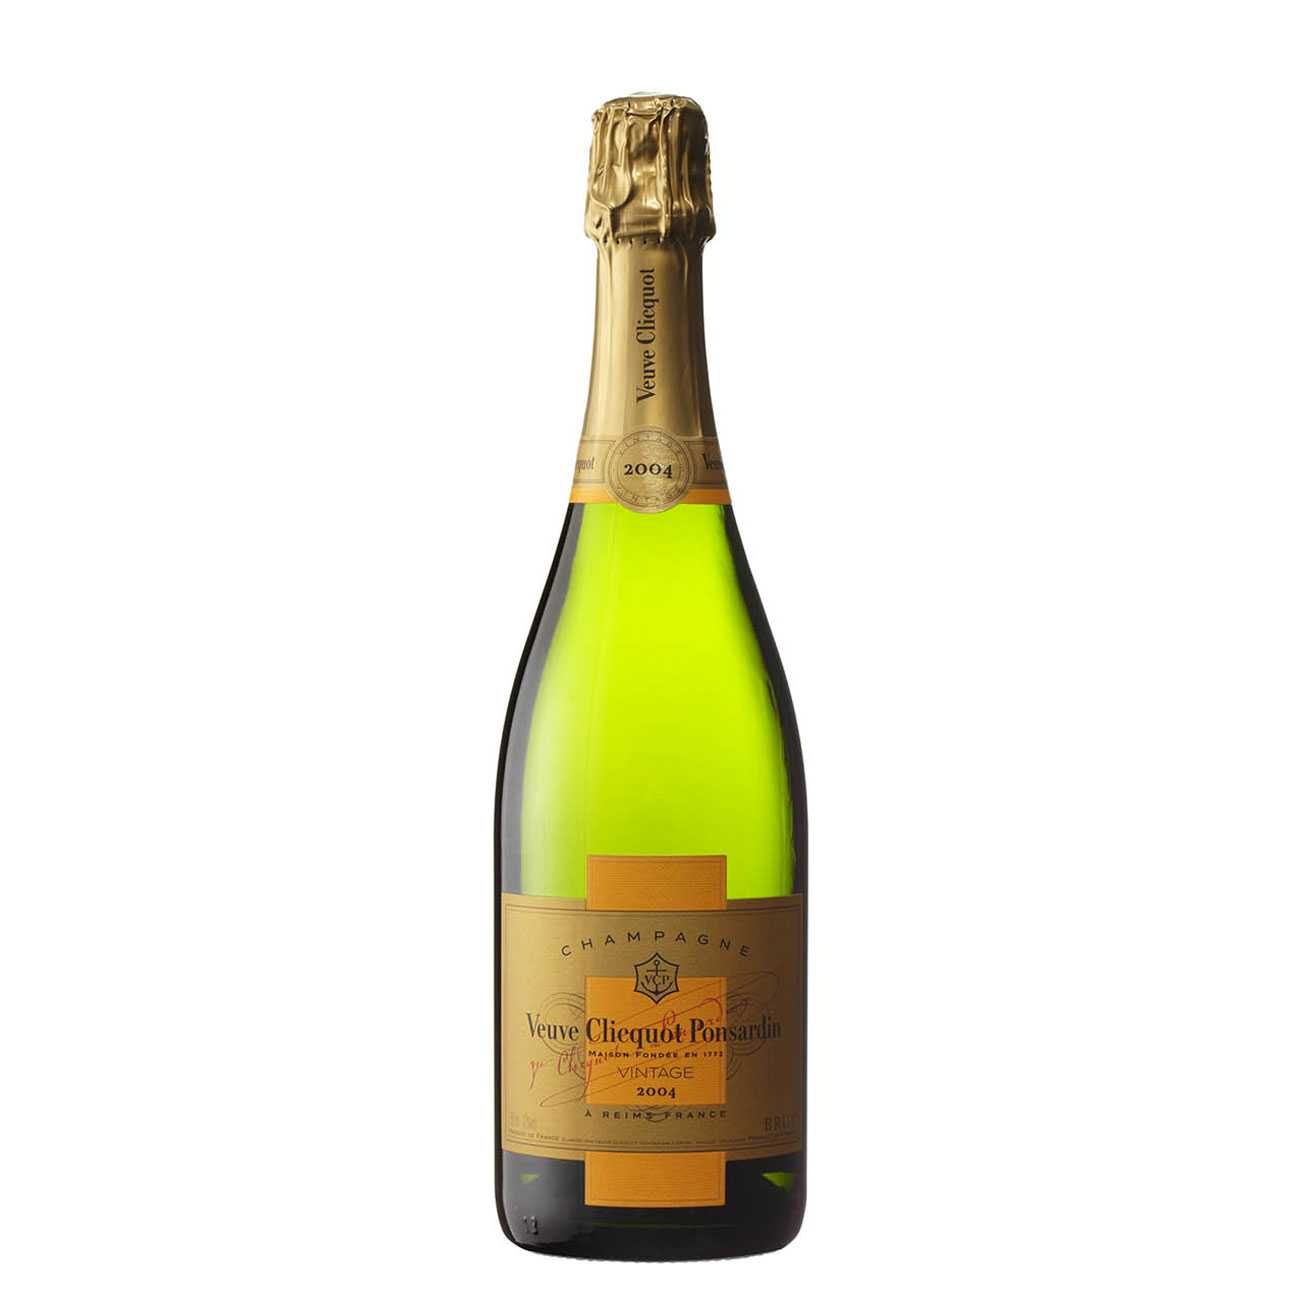 Sampanie, VINTAGE 750 ML, Veuve Clicquot